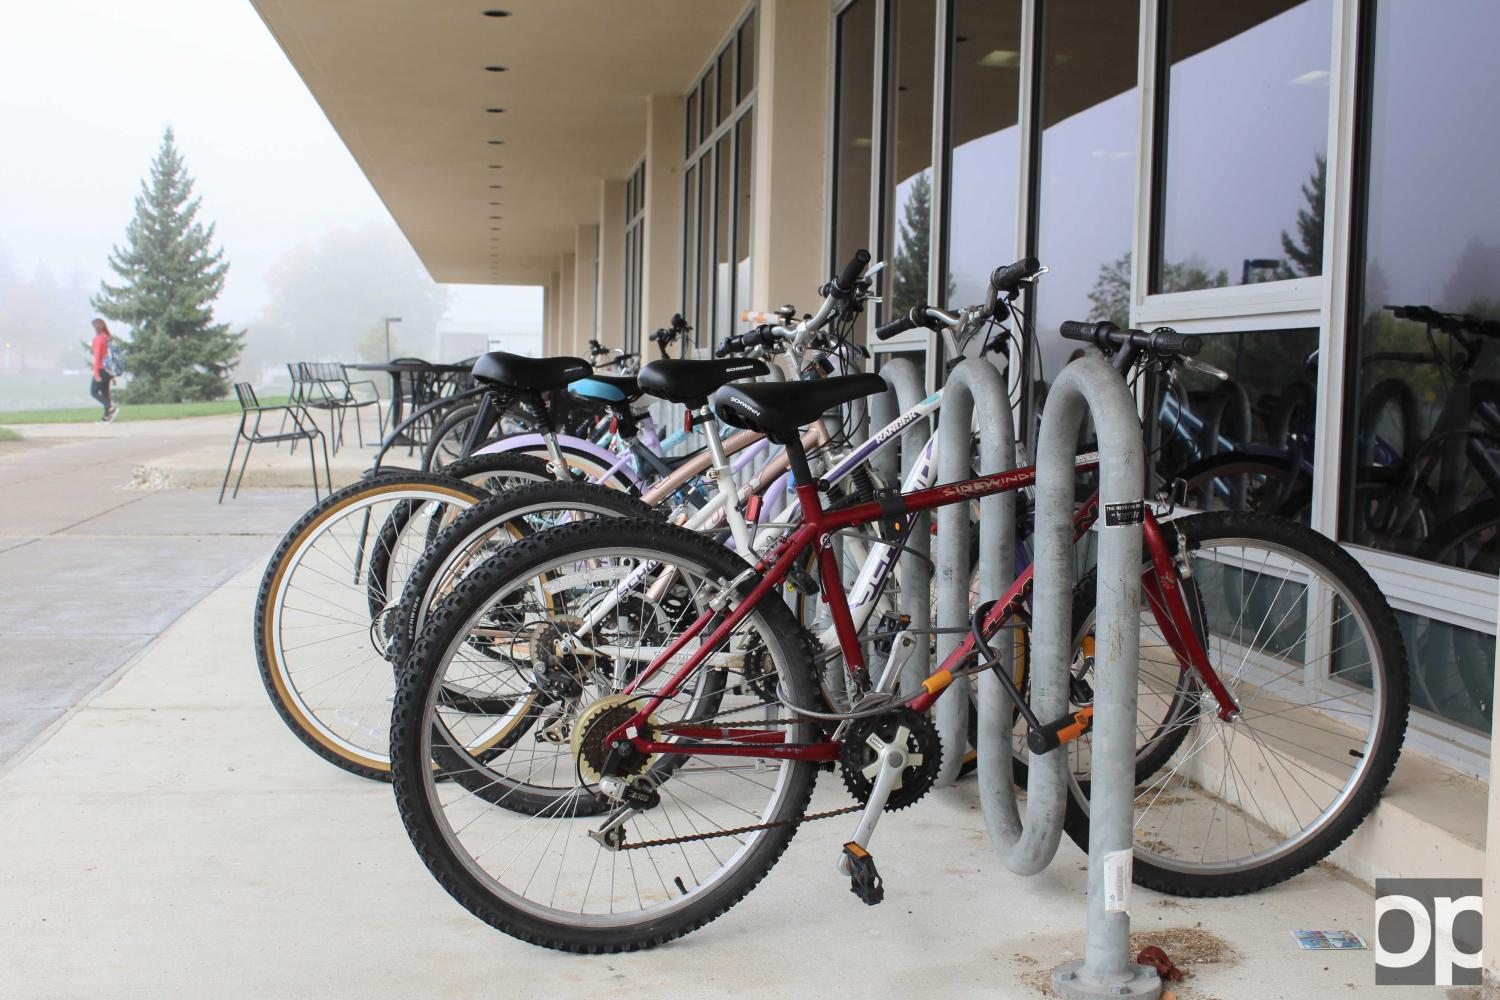 OUSC will implement a checkout system for the bikes.